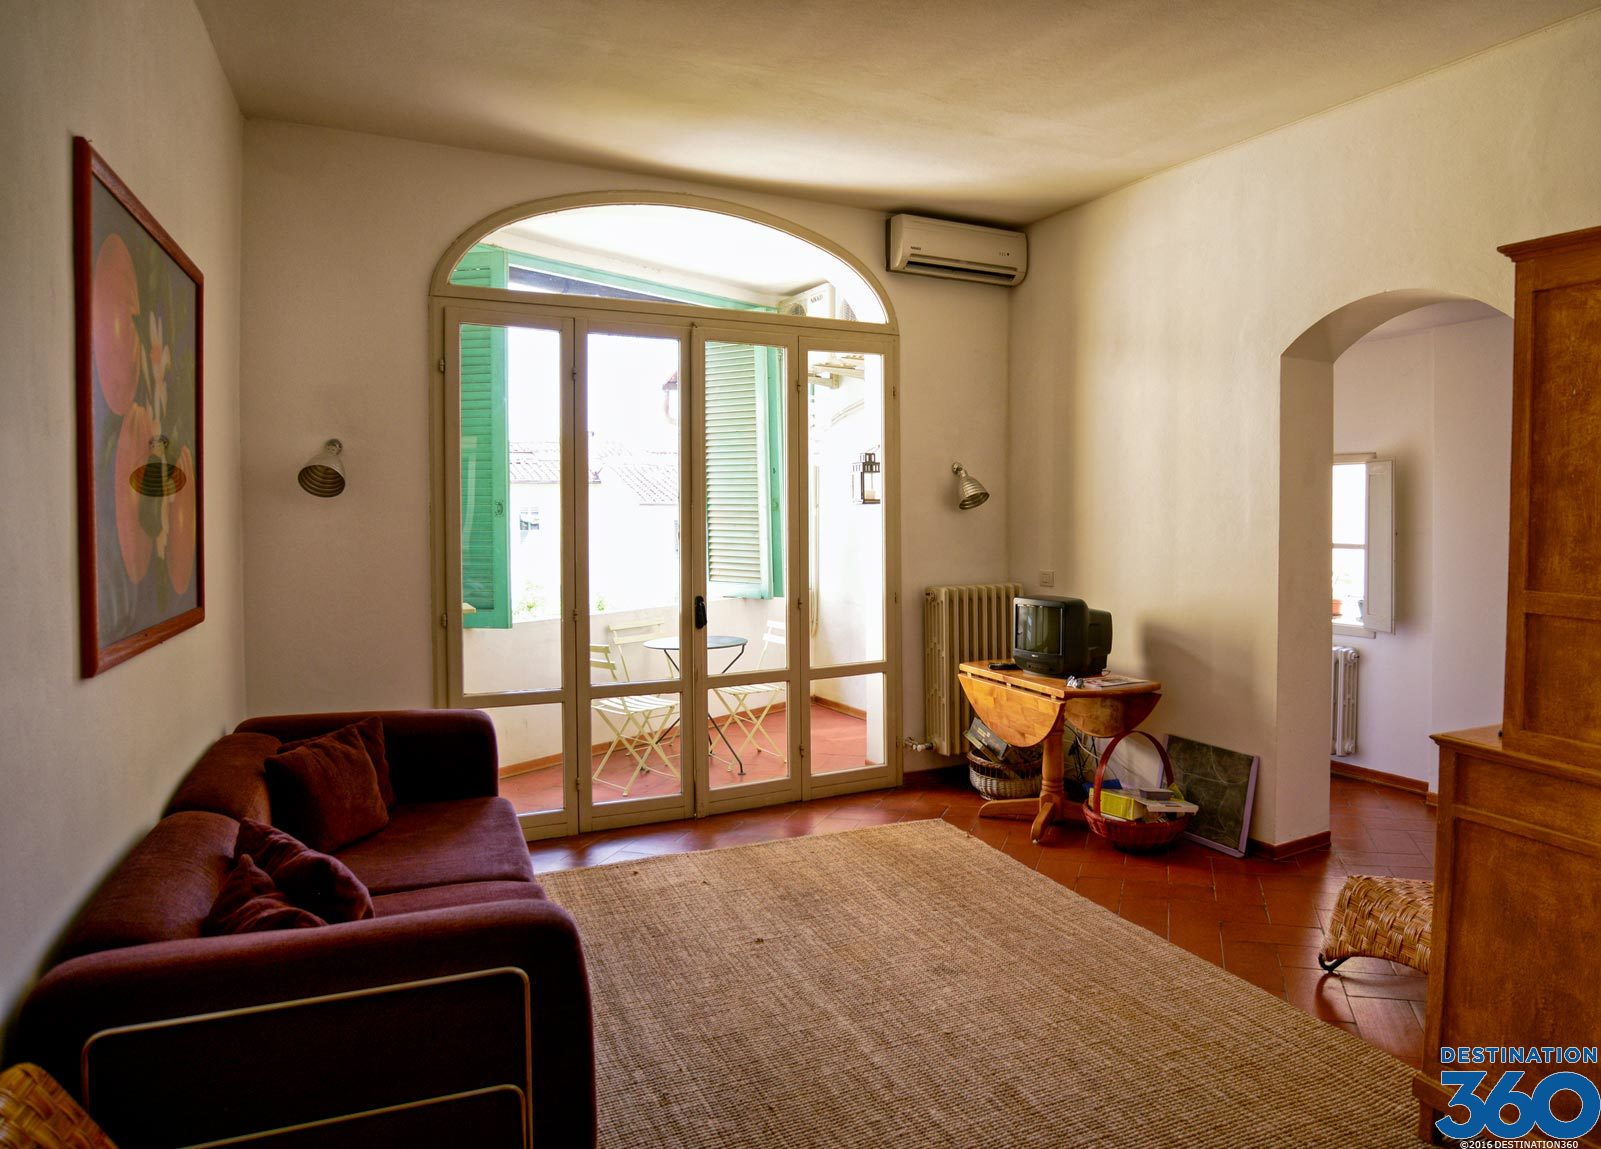 Tourist Apartments Florence - Cheap Florence Apartments